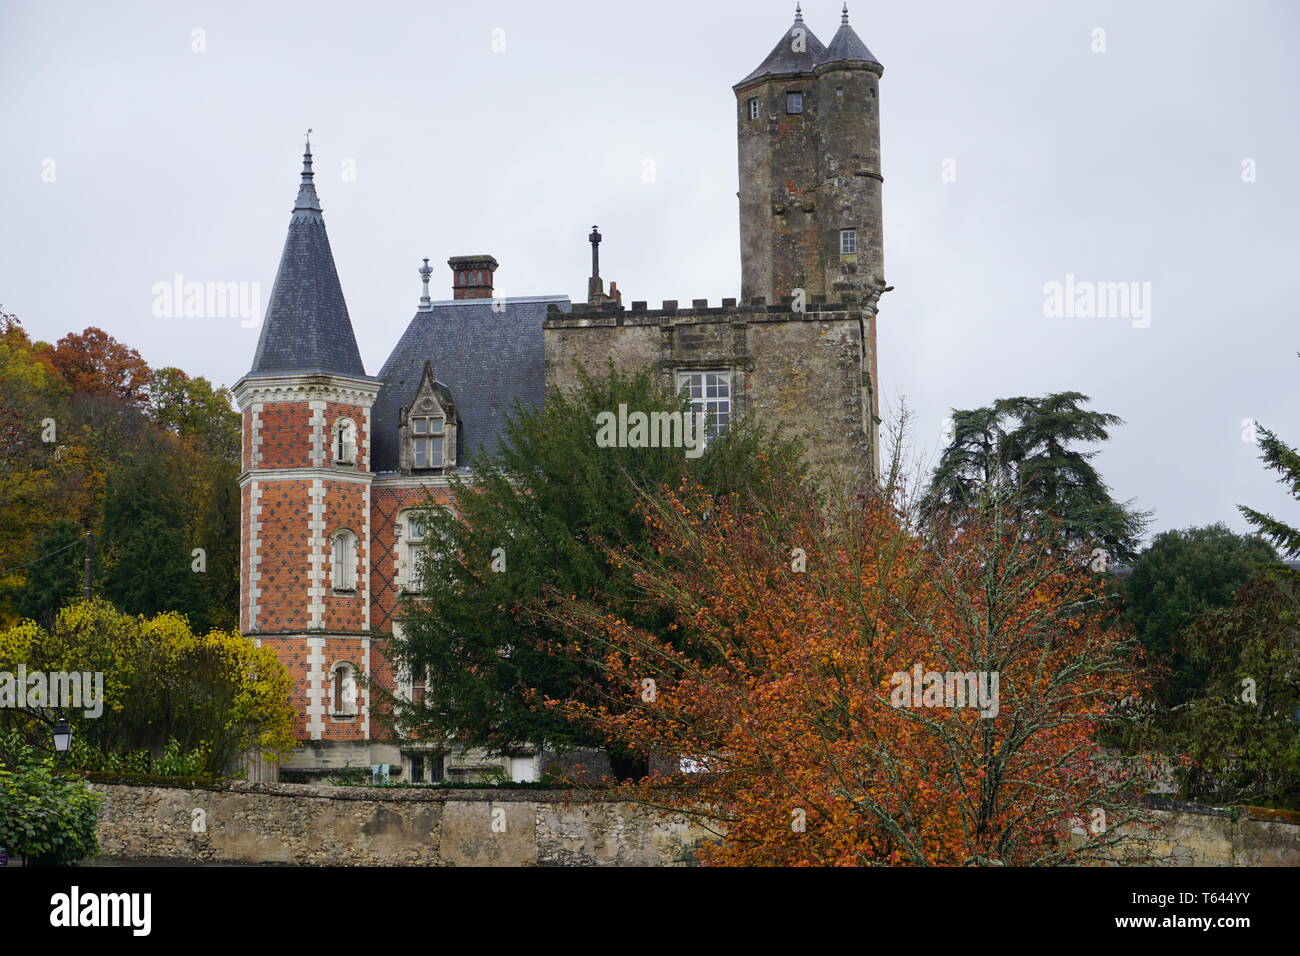 unusual stone tower on an old red brick castle in the country in  France - Stock Image